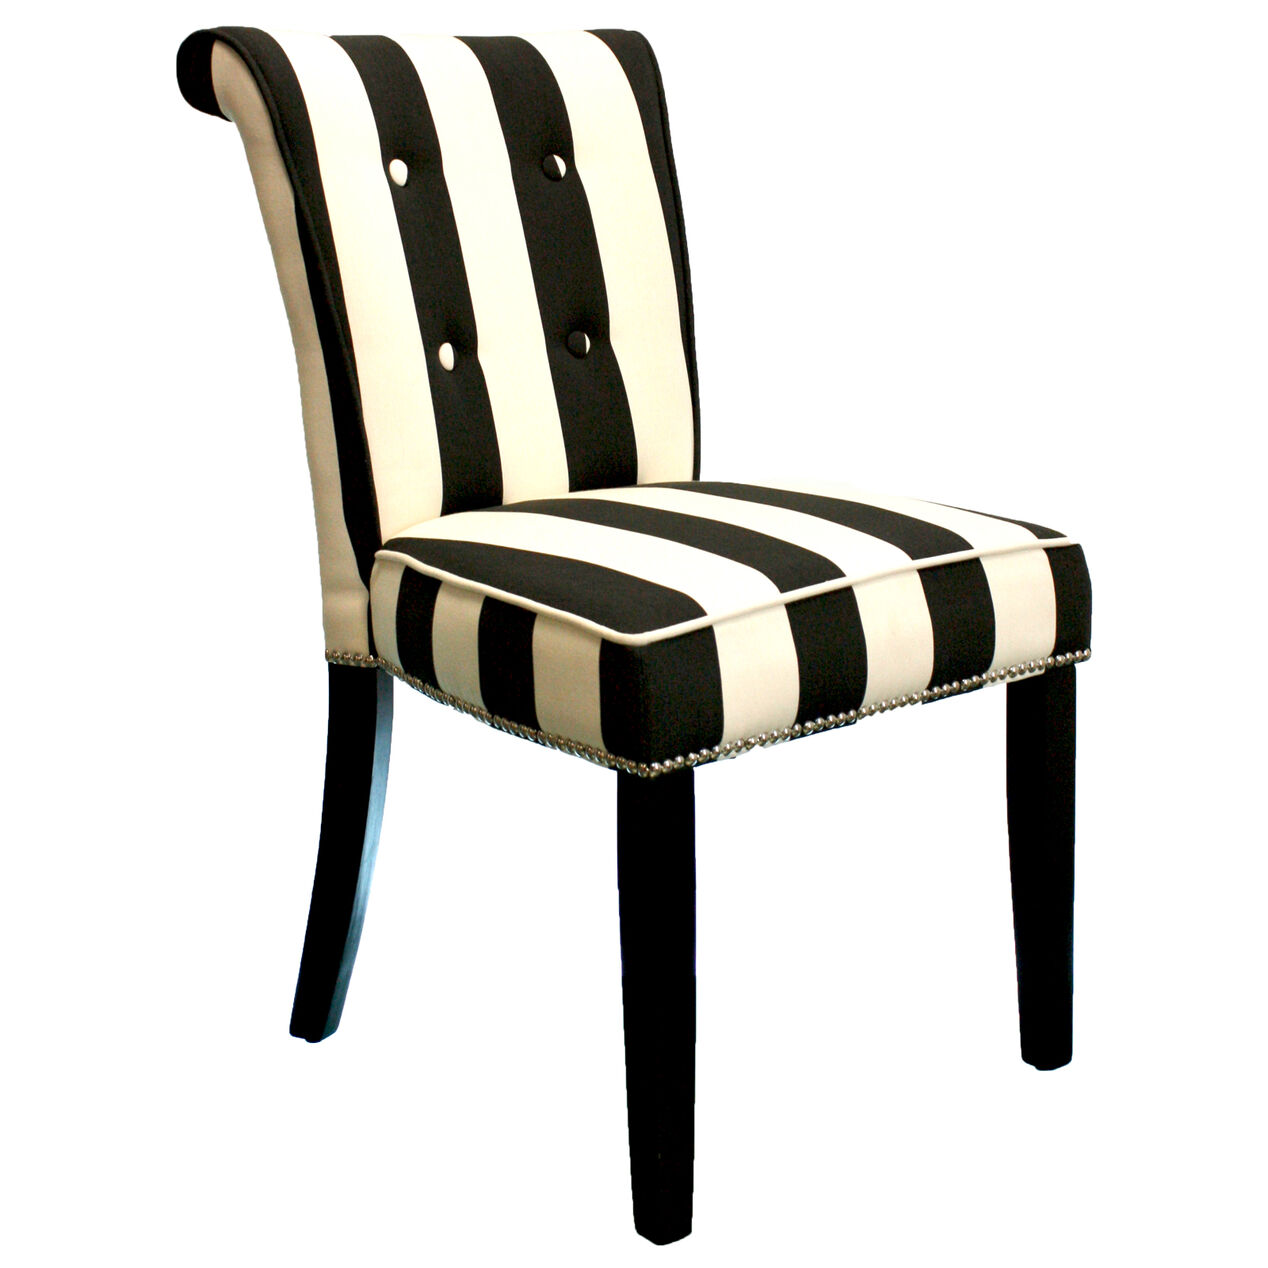 Black And White Striped Dining Chair Chairs Model : 124133614 from chairs.2011airjordan.com size 1268 x 1268 jpeg 104kB